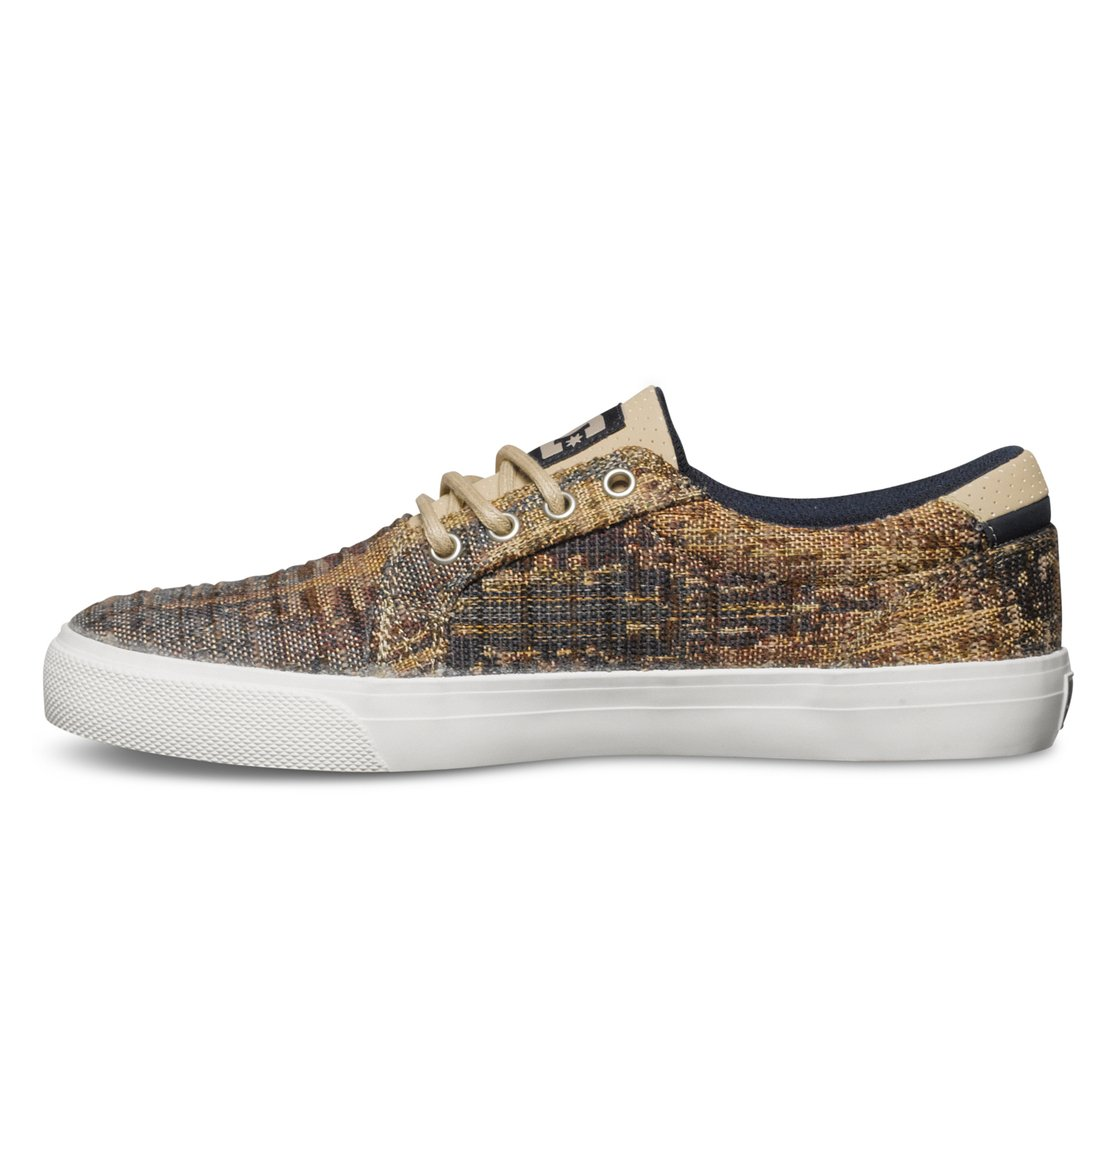 DC Shoes Sneakers basse Uomo DC Shoes COUNCIL TX LE